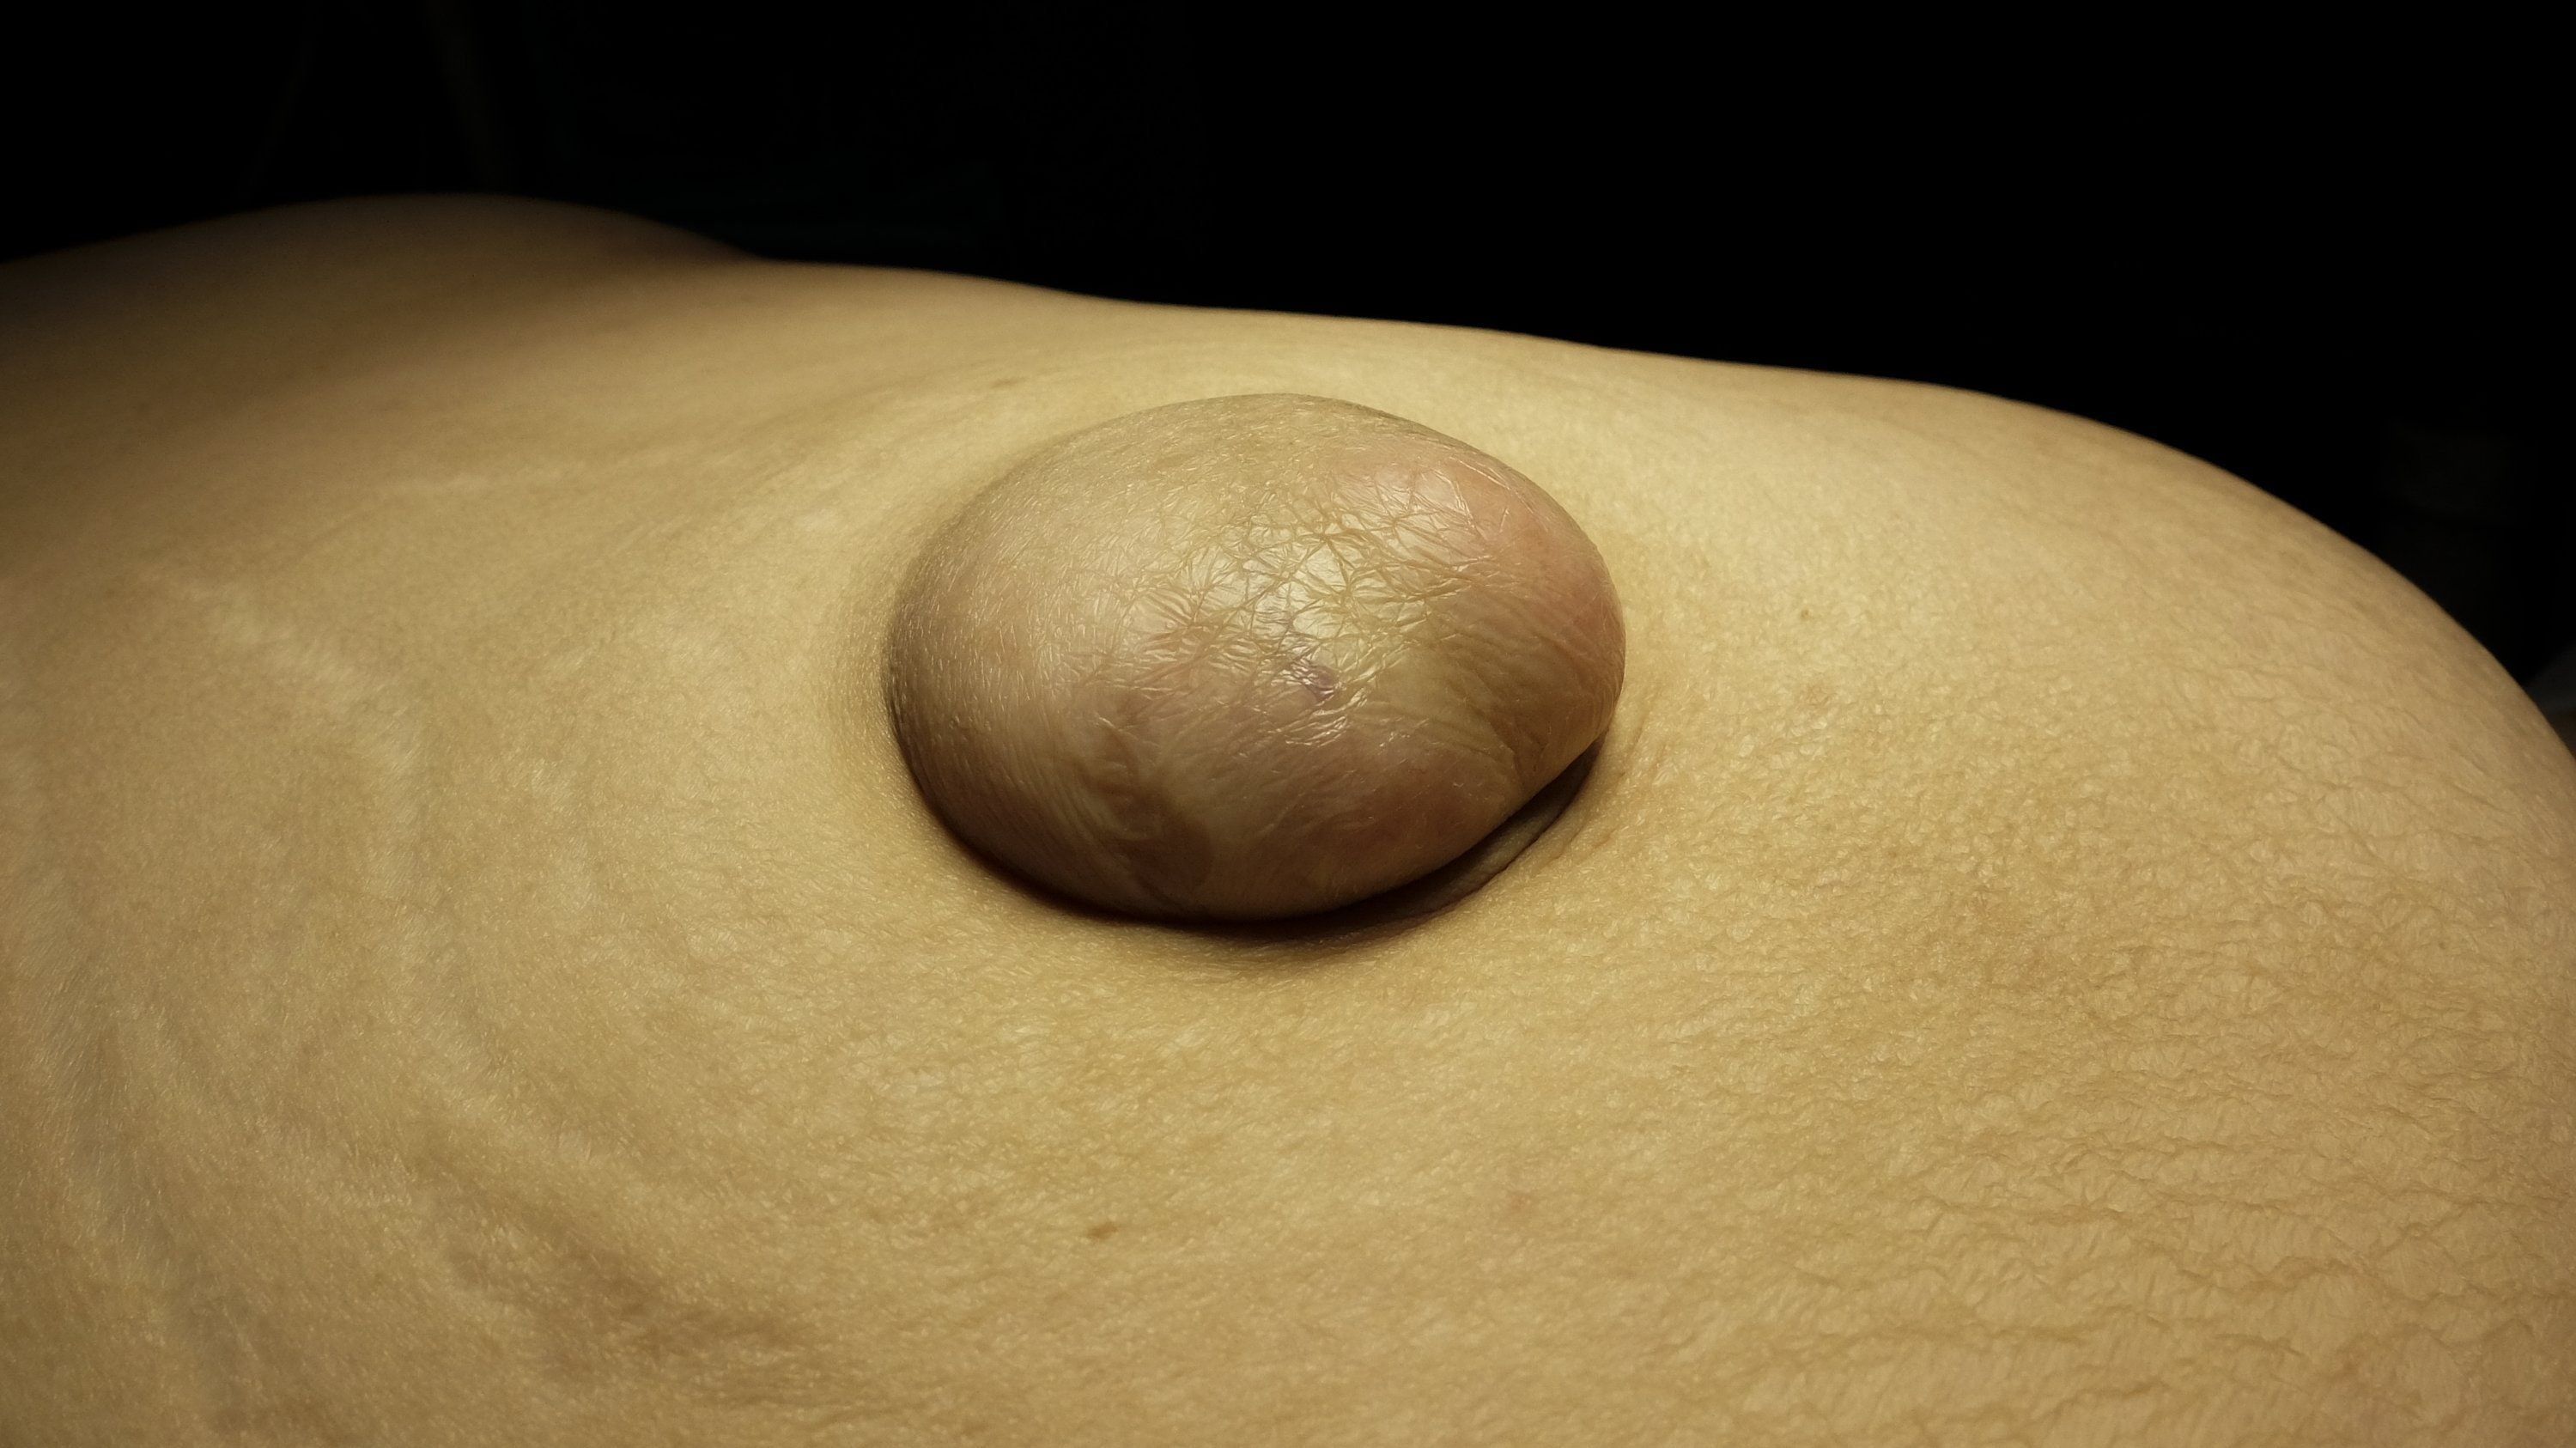 An image depicting a person suffering from skin-colored abdominal bump symptoms